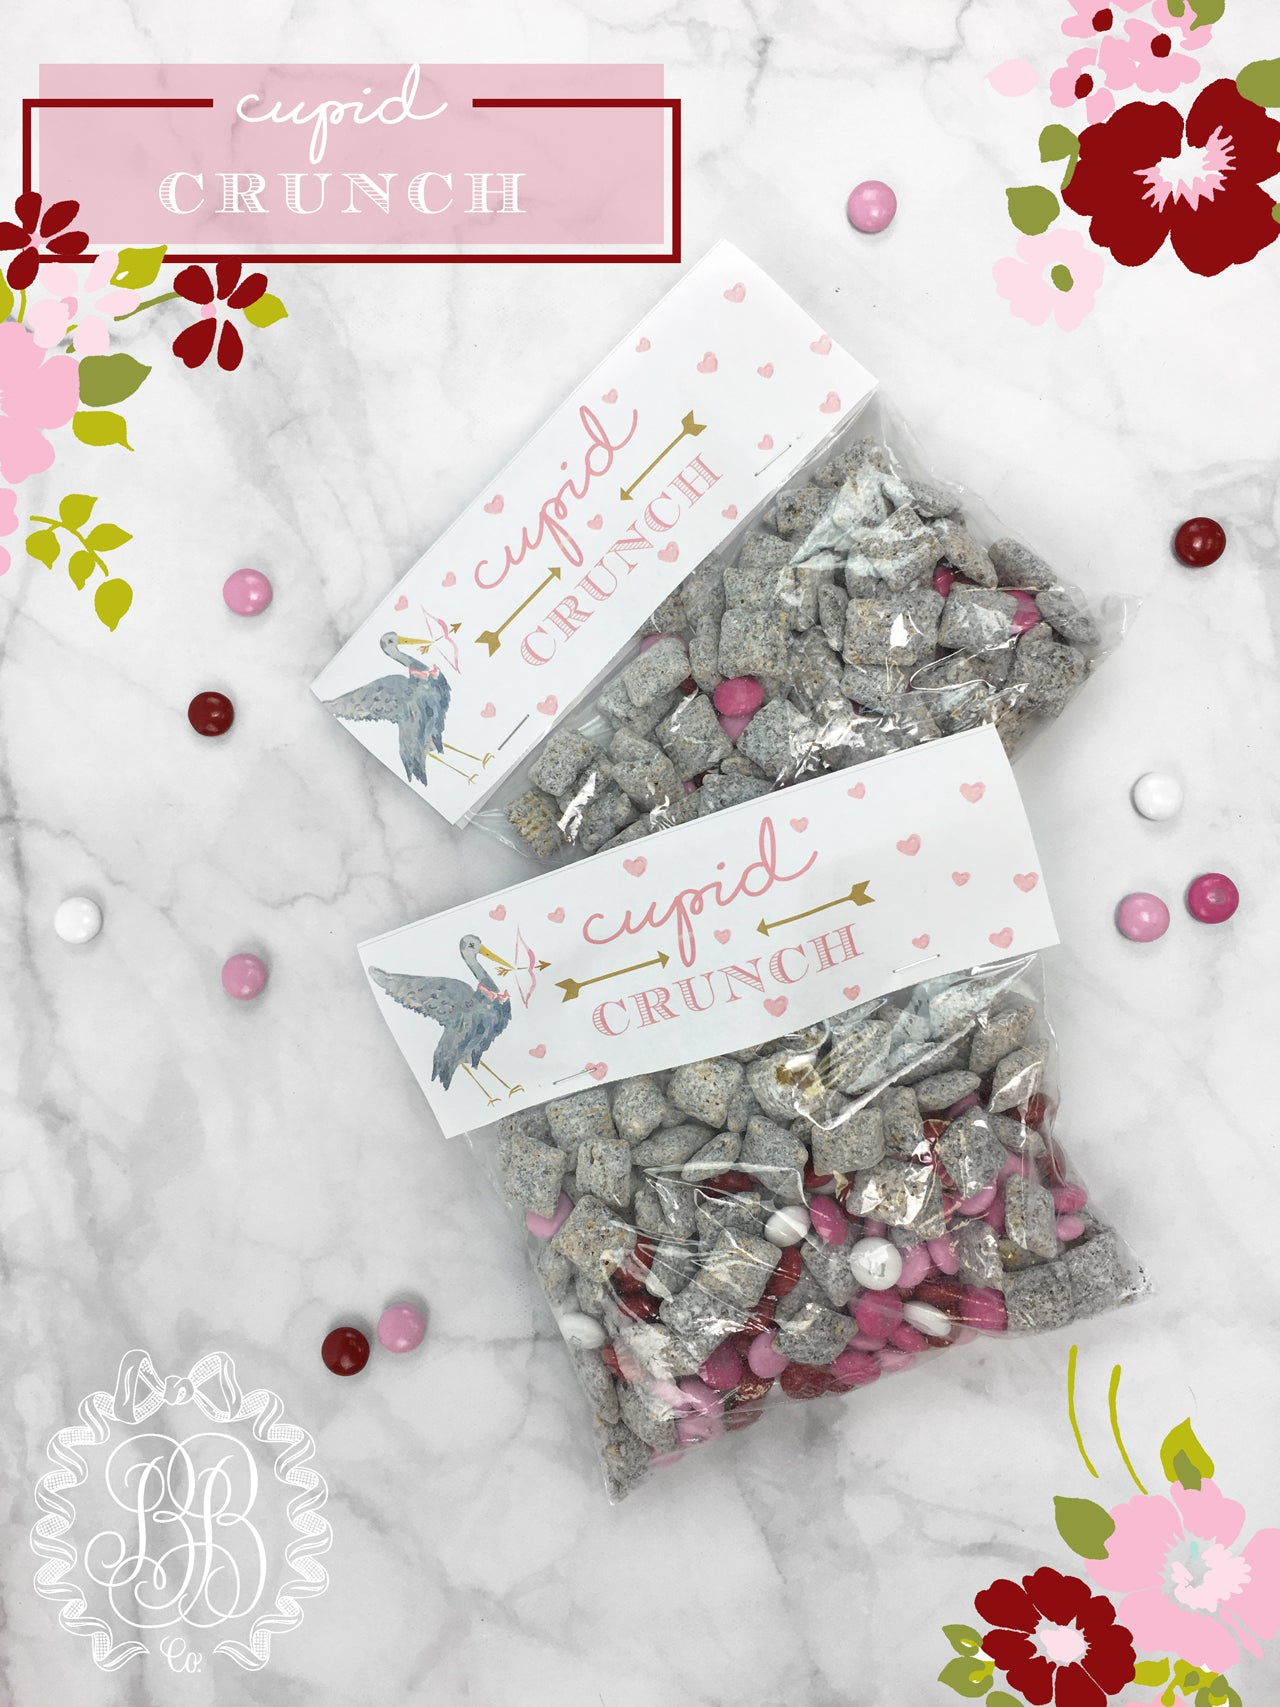 T.B.B.C. Valentine Treat: Cupid Crunch